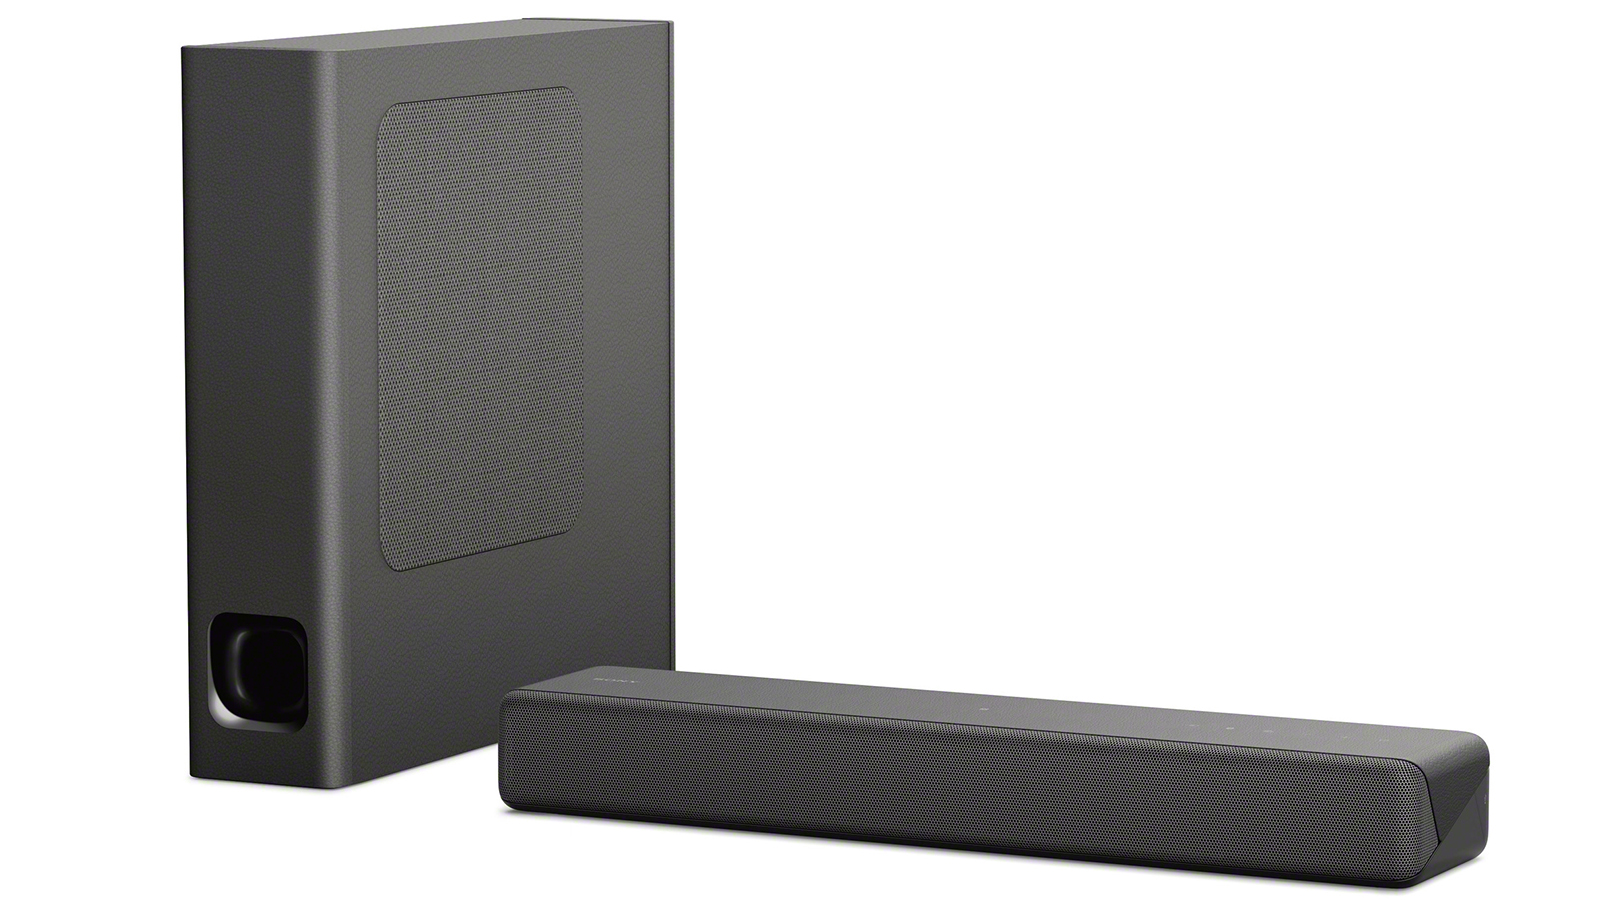 sony-soundbar-ht-mt300-004